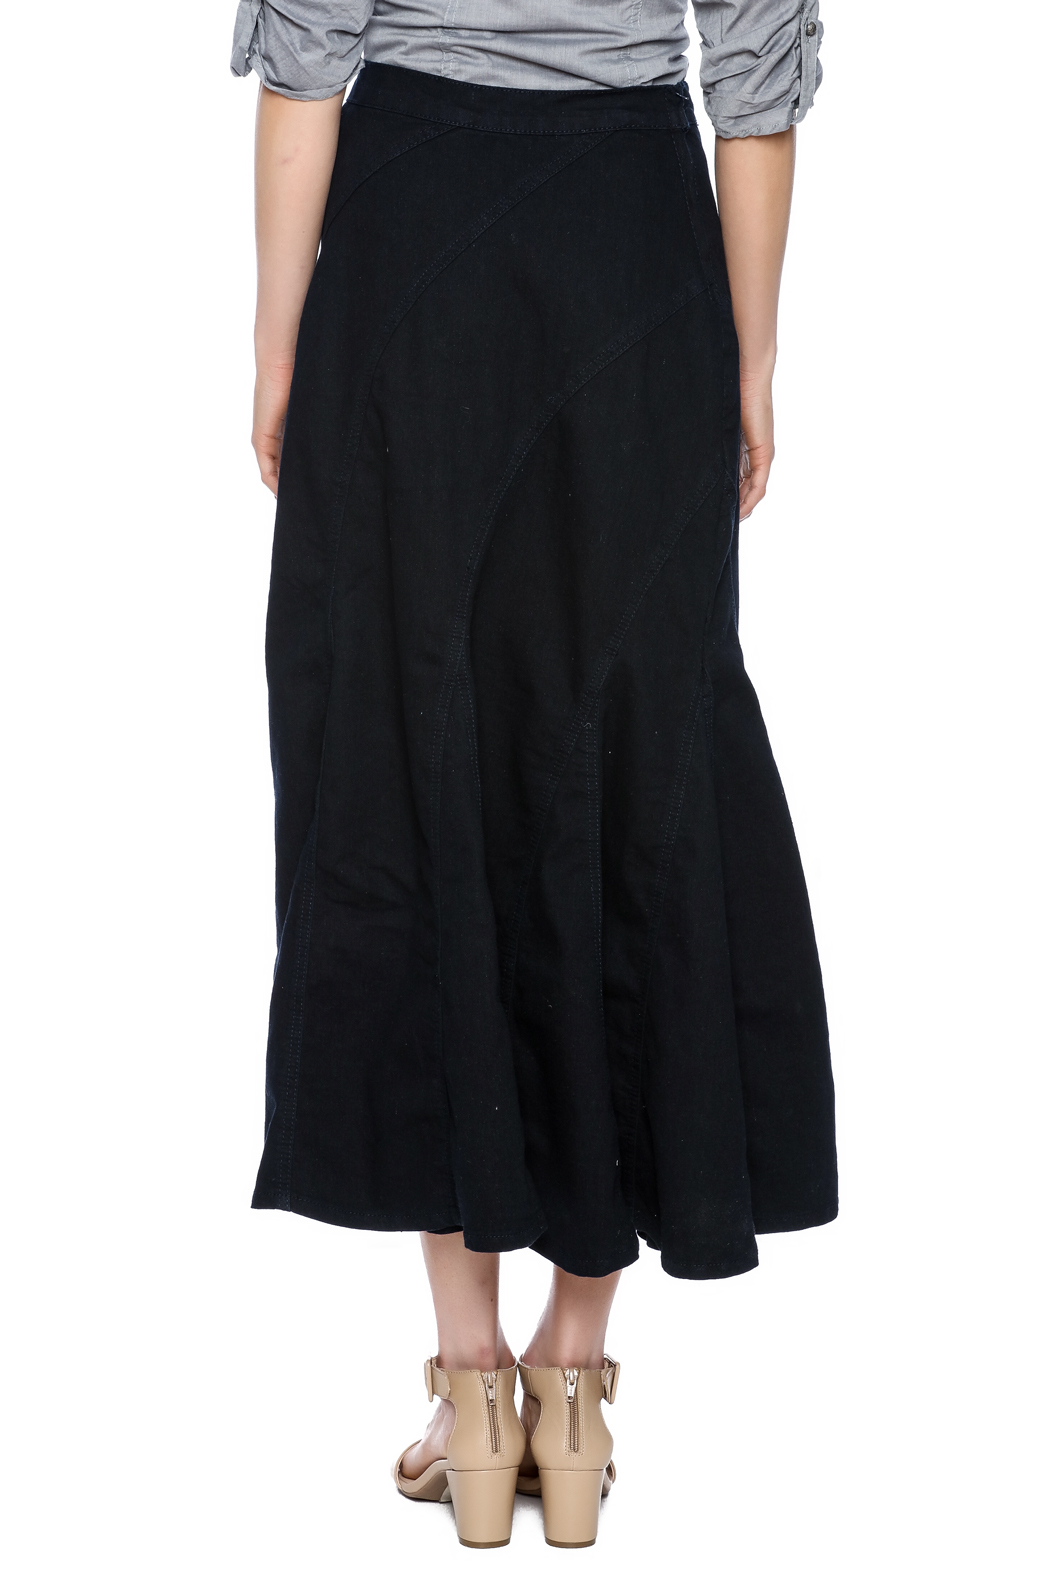 be mermaid denim skirt from new jersey by covered